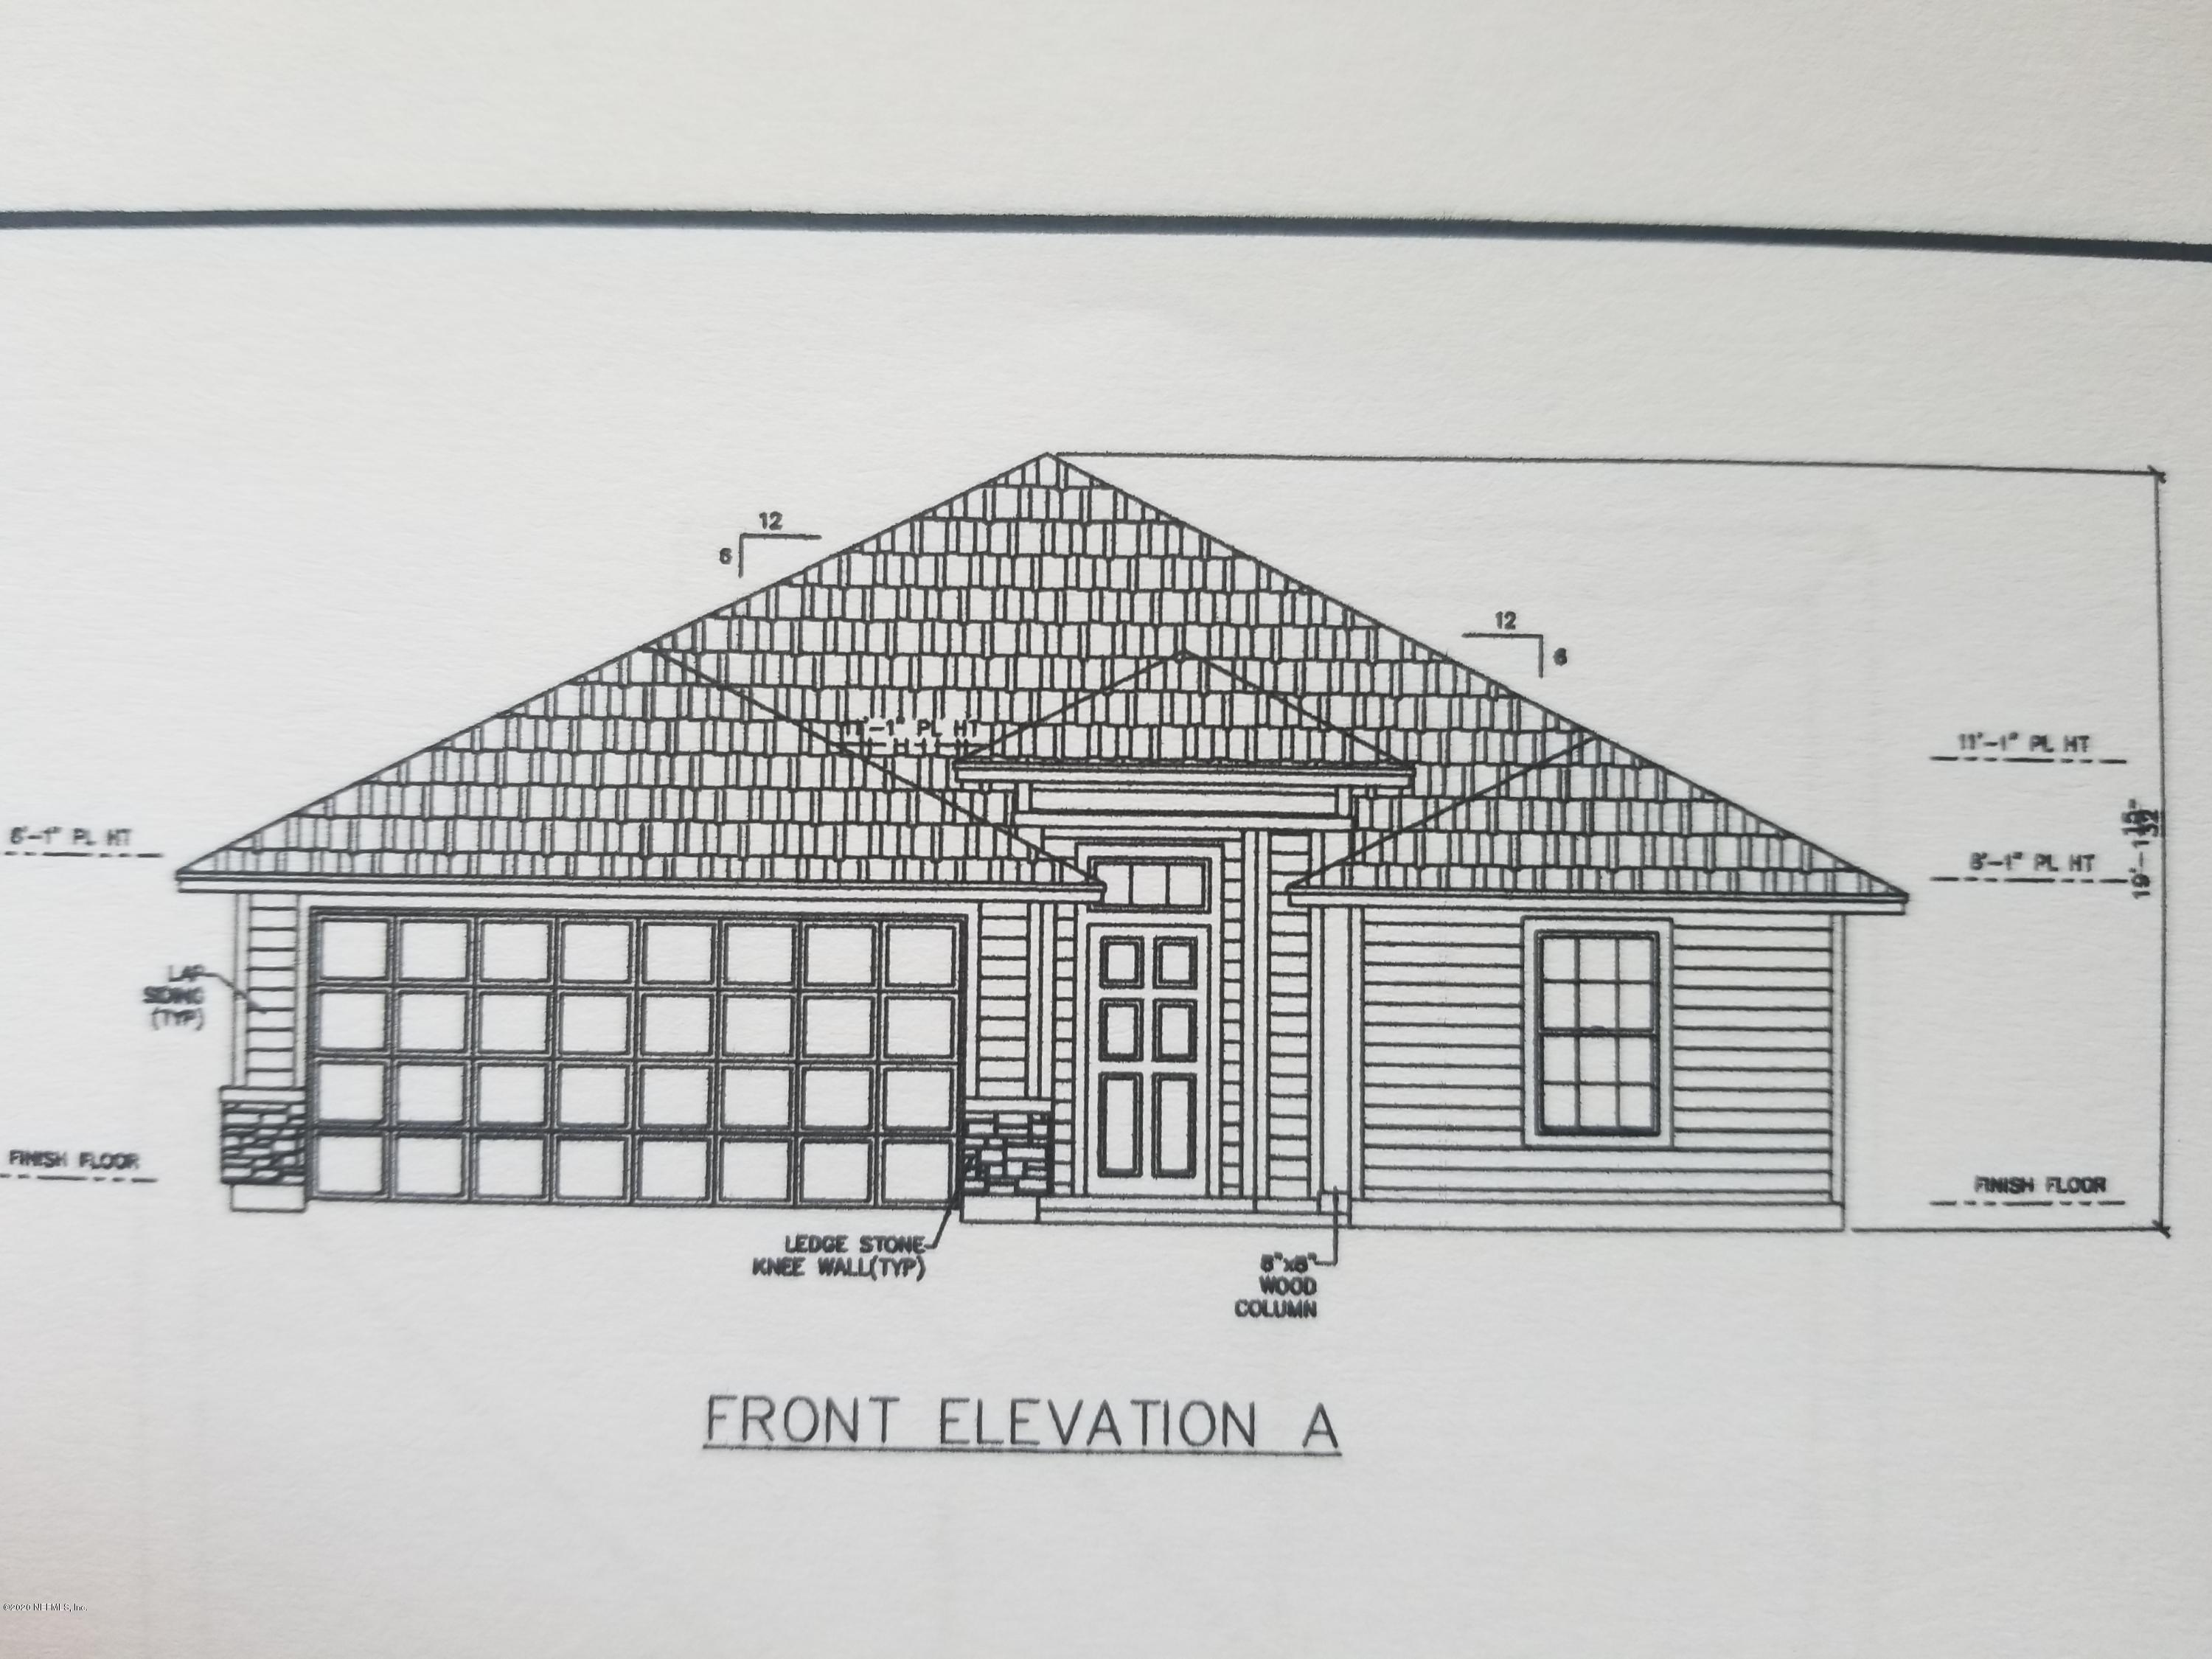 11223 LIBERTY SQUARE, JACKSONVILLE, FLORIDA 32221, 4 Bedrooms Bedrooms, ,2 BathroomsBathrooms,Residential,For sale,LIBERTY SQUARE,1047349